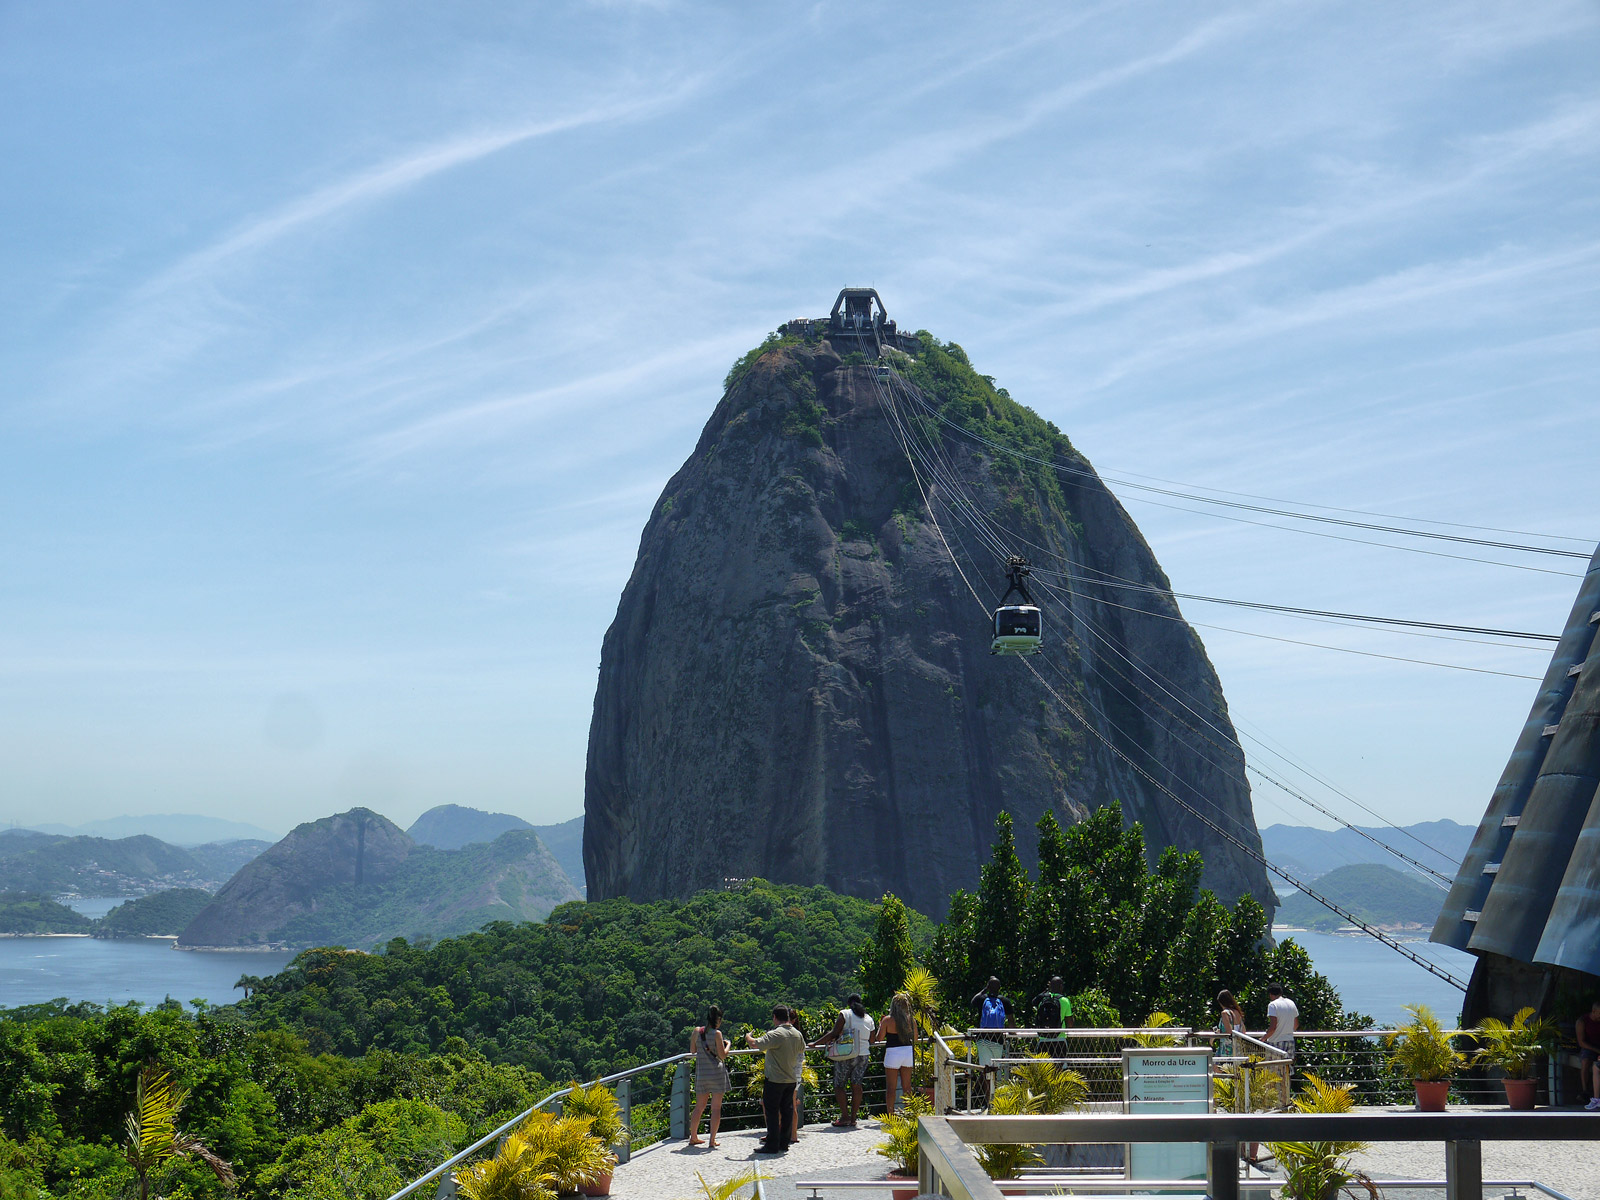 From Urca Hill to Sugarloaf Mountain - Rio de Janeiro, Brazil